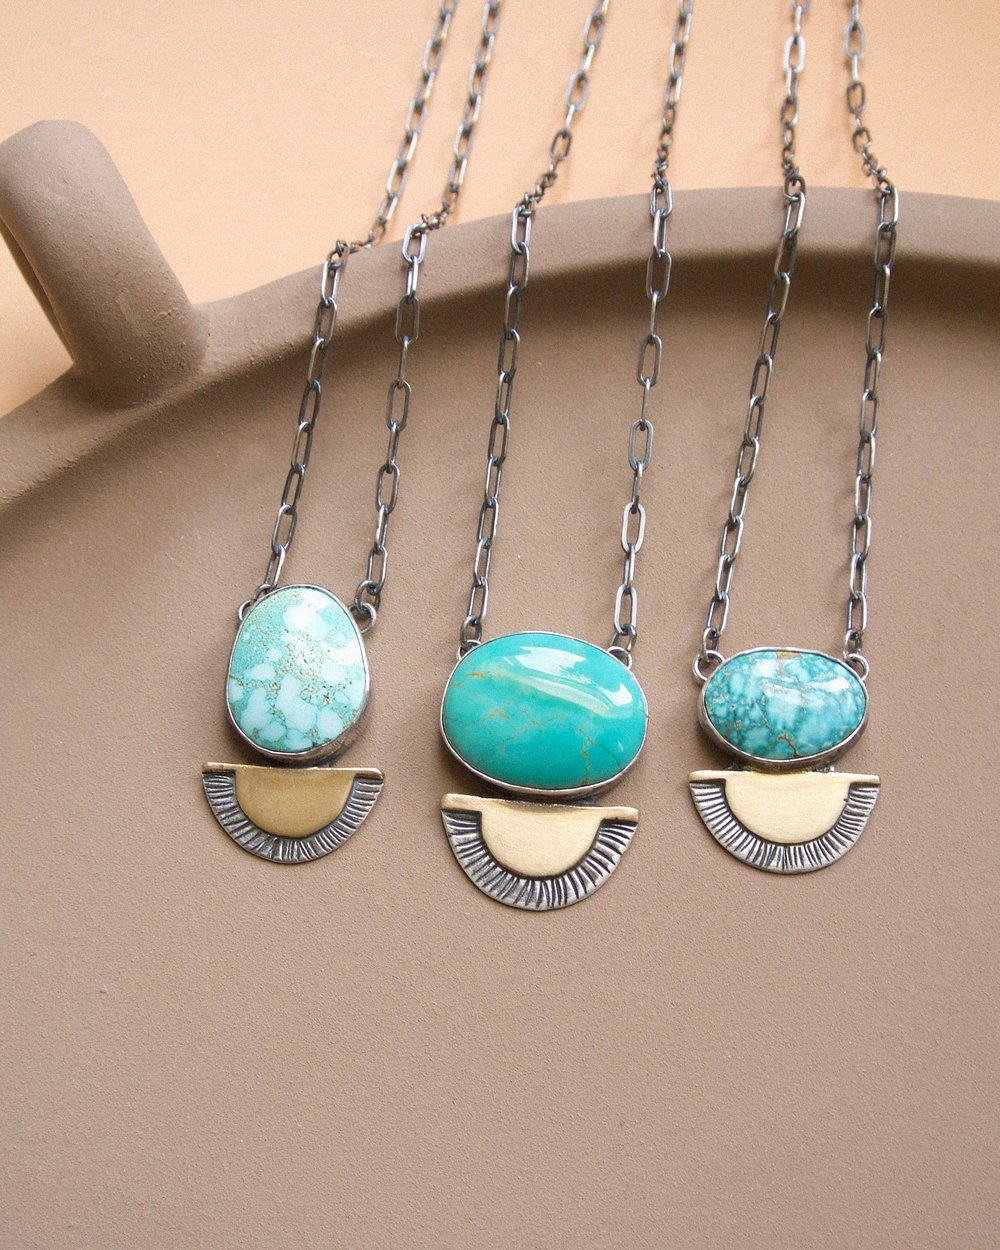 New in Necklaces